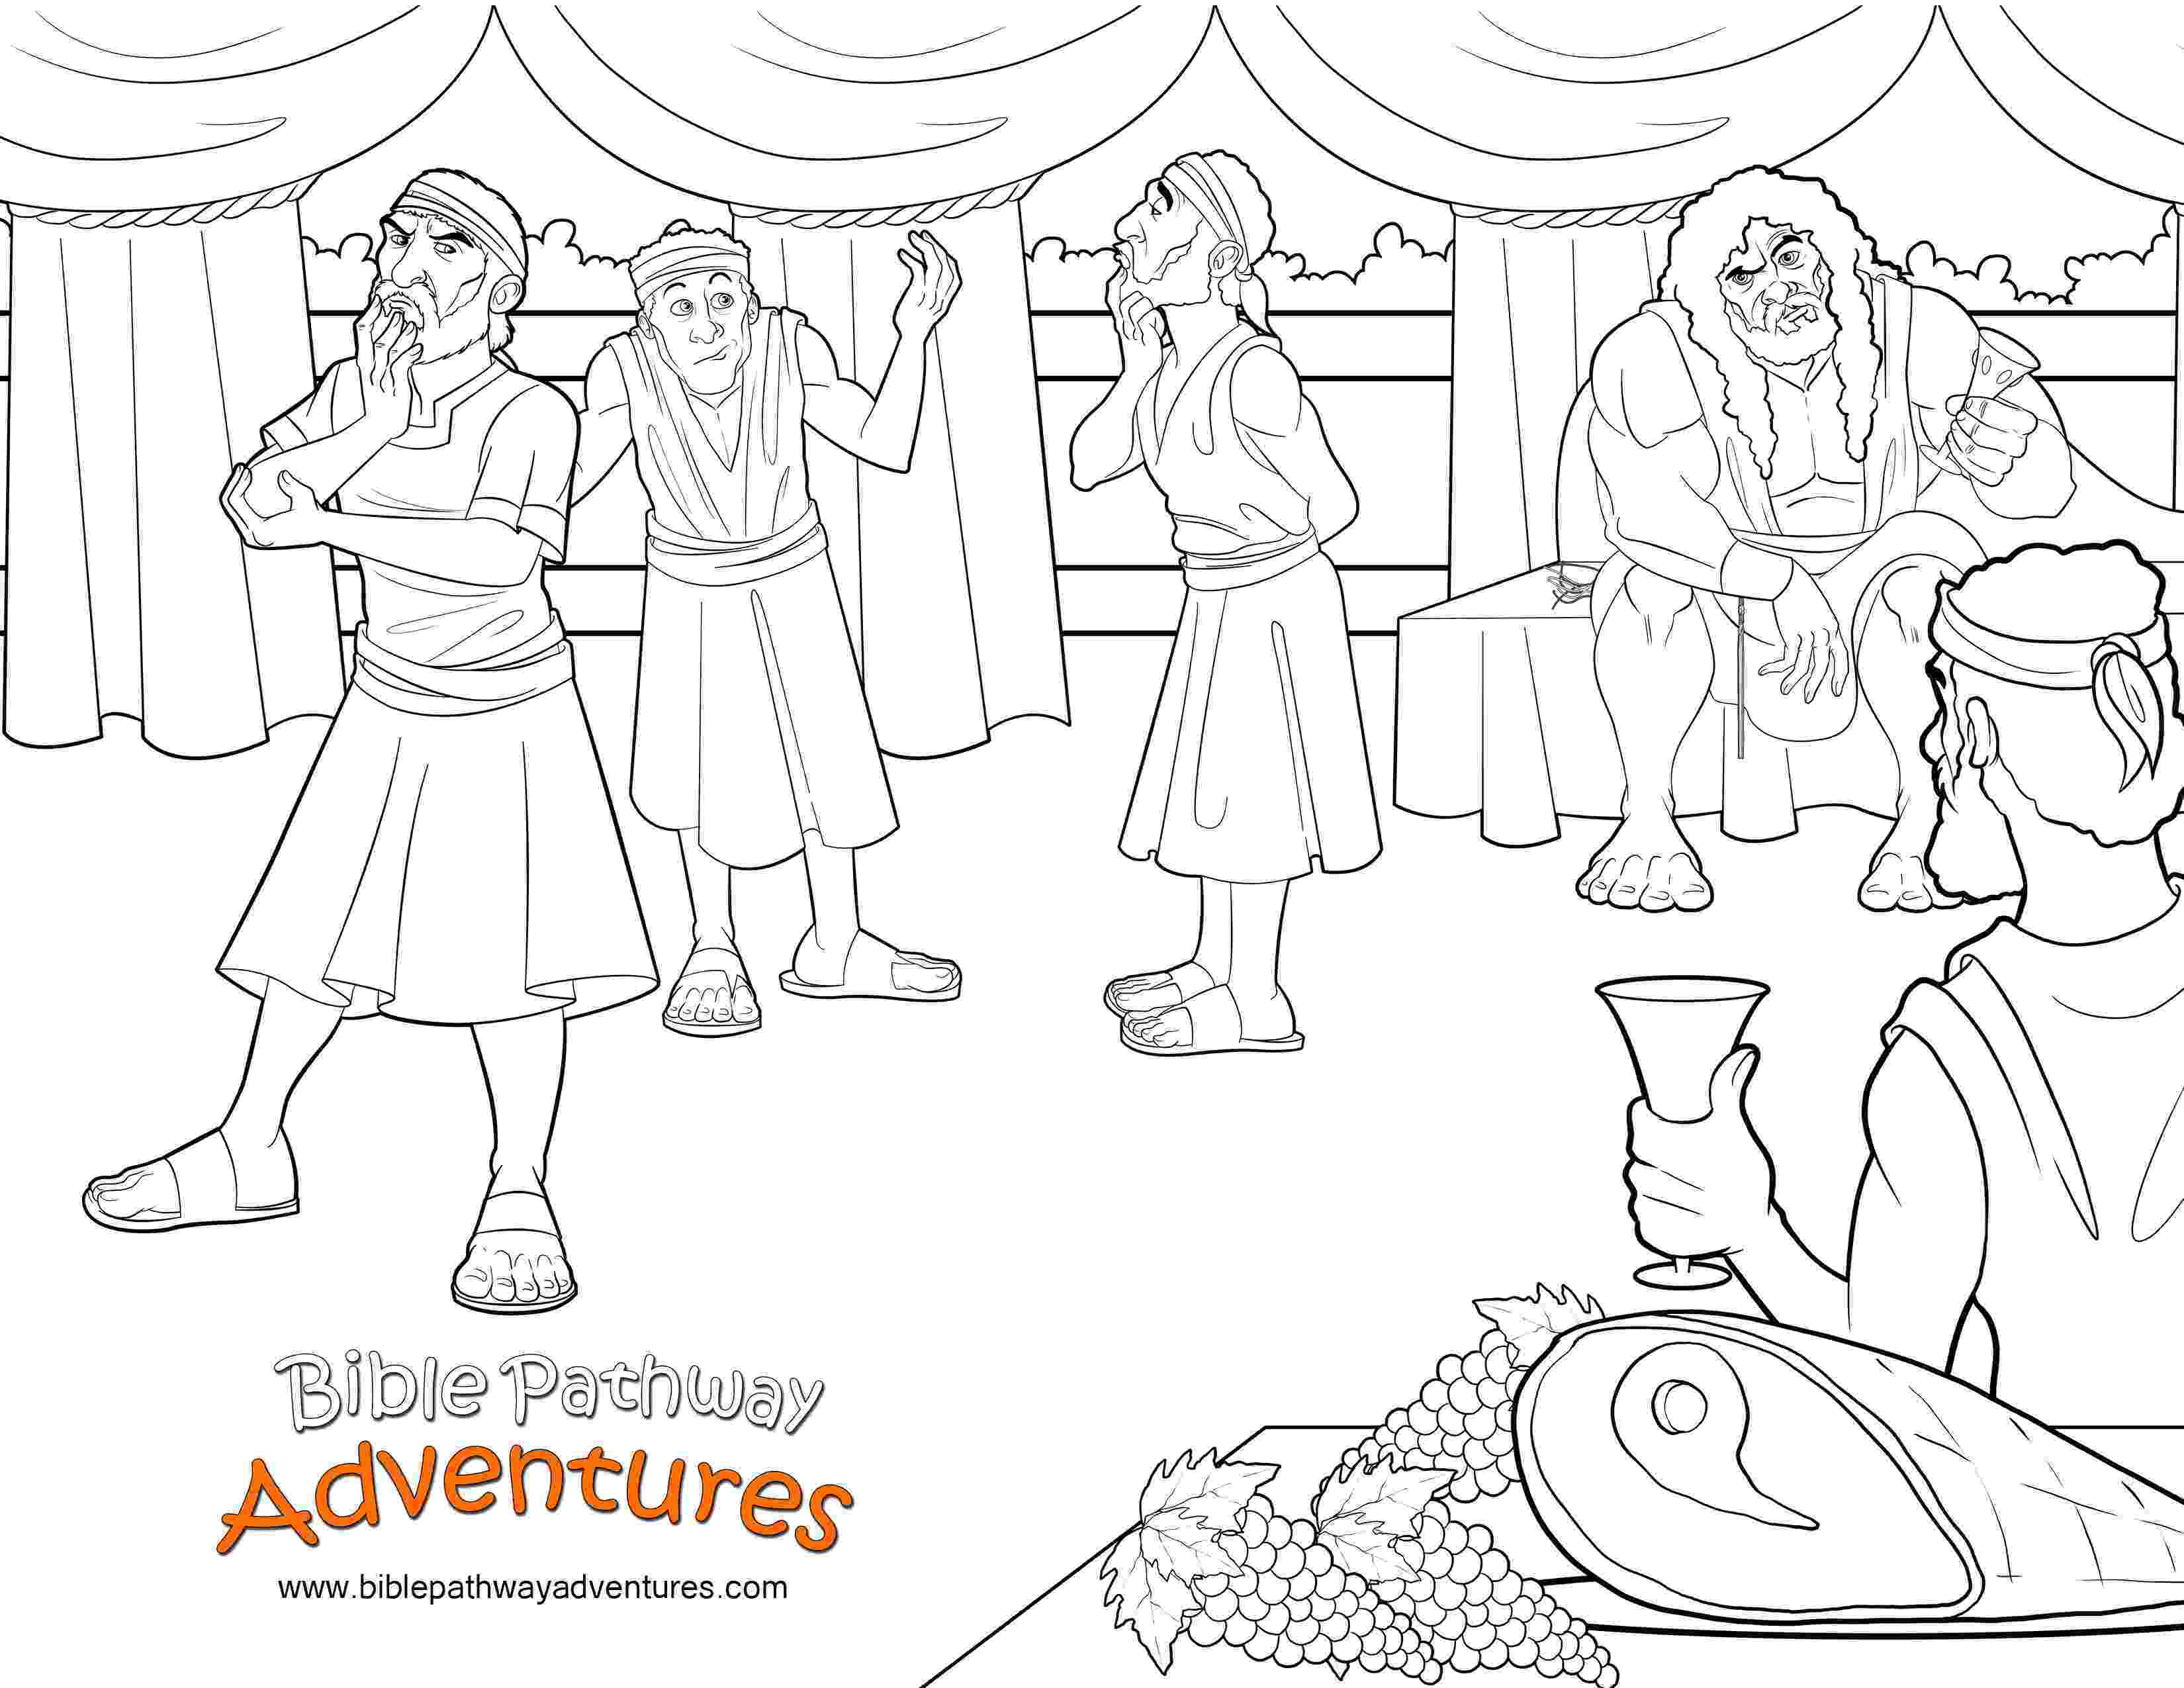 samson bible coloring pages bible coloring pages samson bible story pages samson pages bible coloring